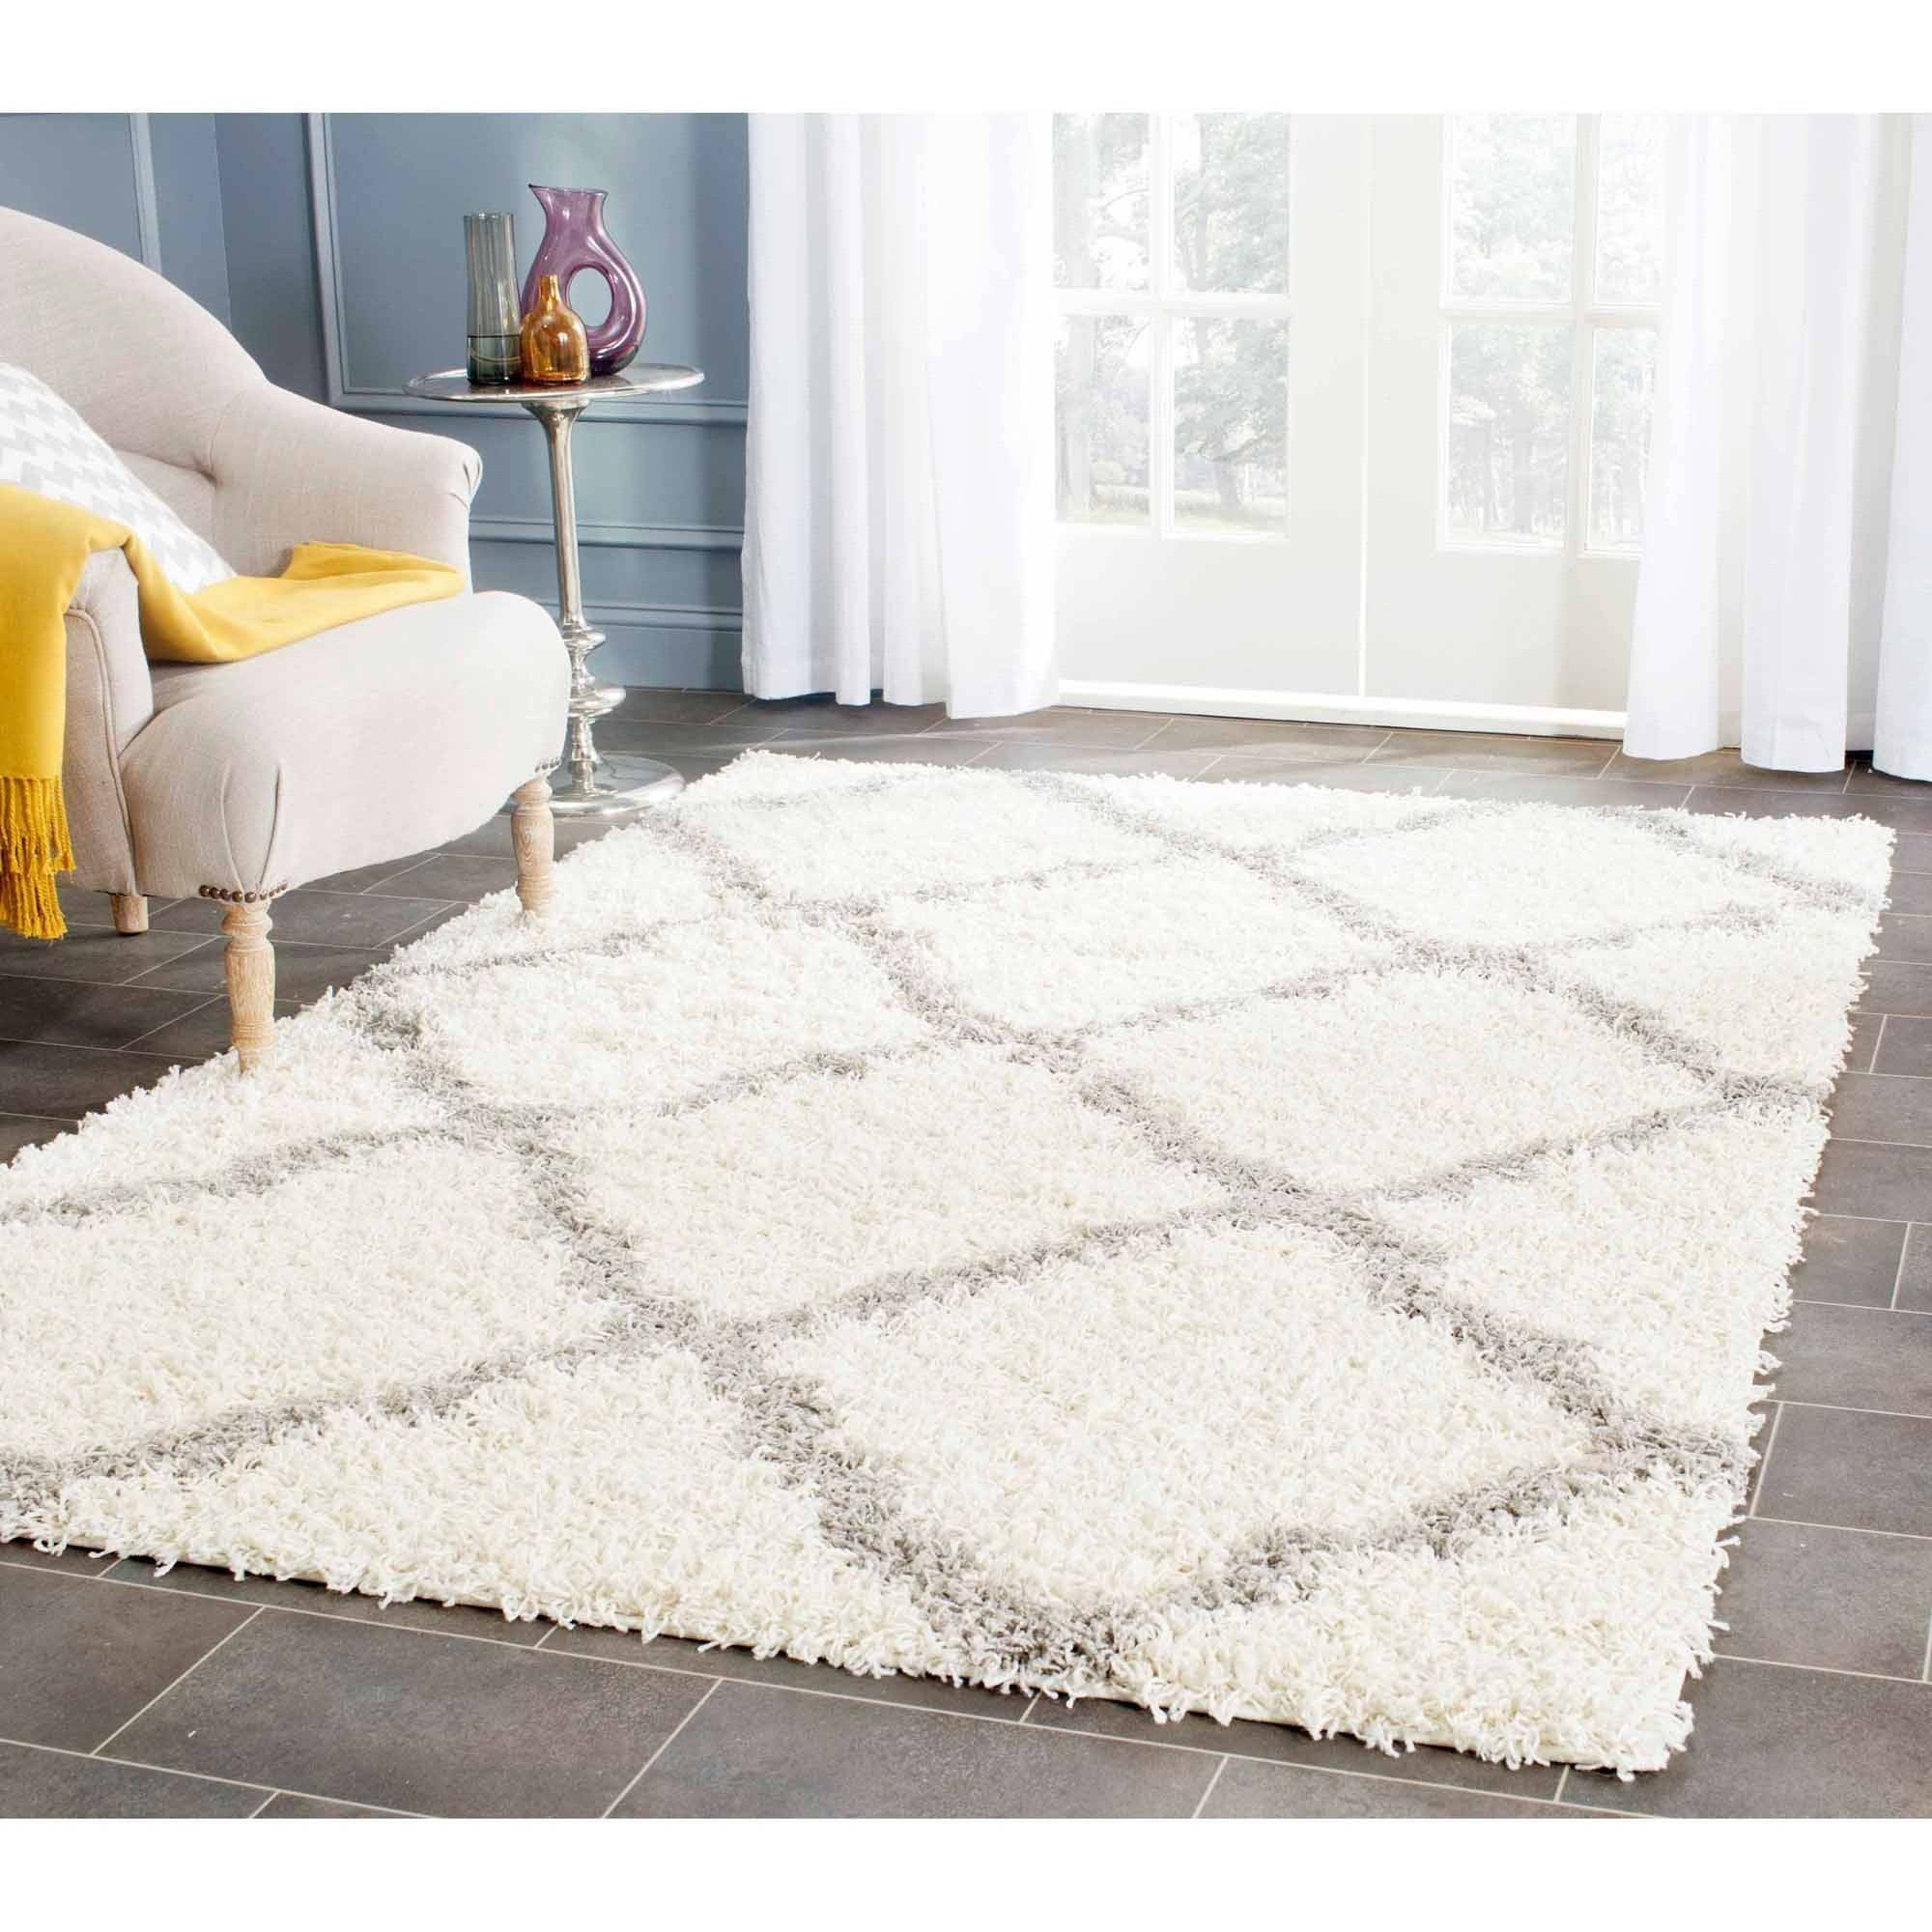 target of ideas rug at a decoration floor jute beautiful osted what is cheap ruta interior rugs circular grey lappljung design sisal x for lovely area t ikea